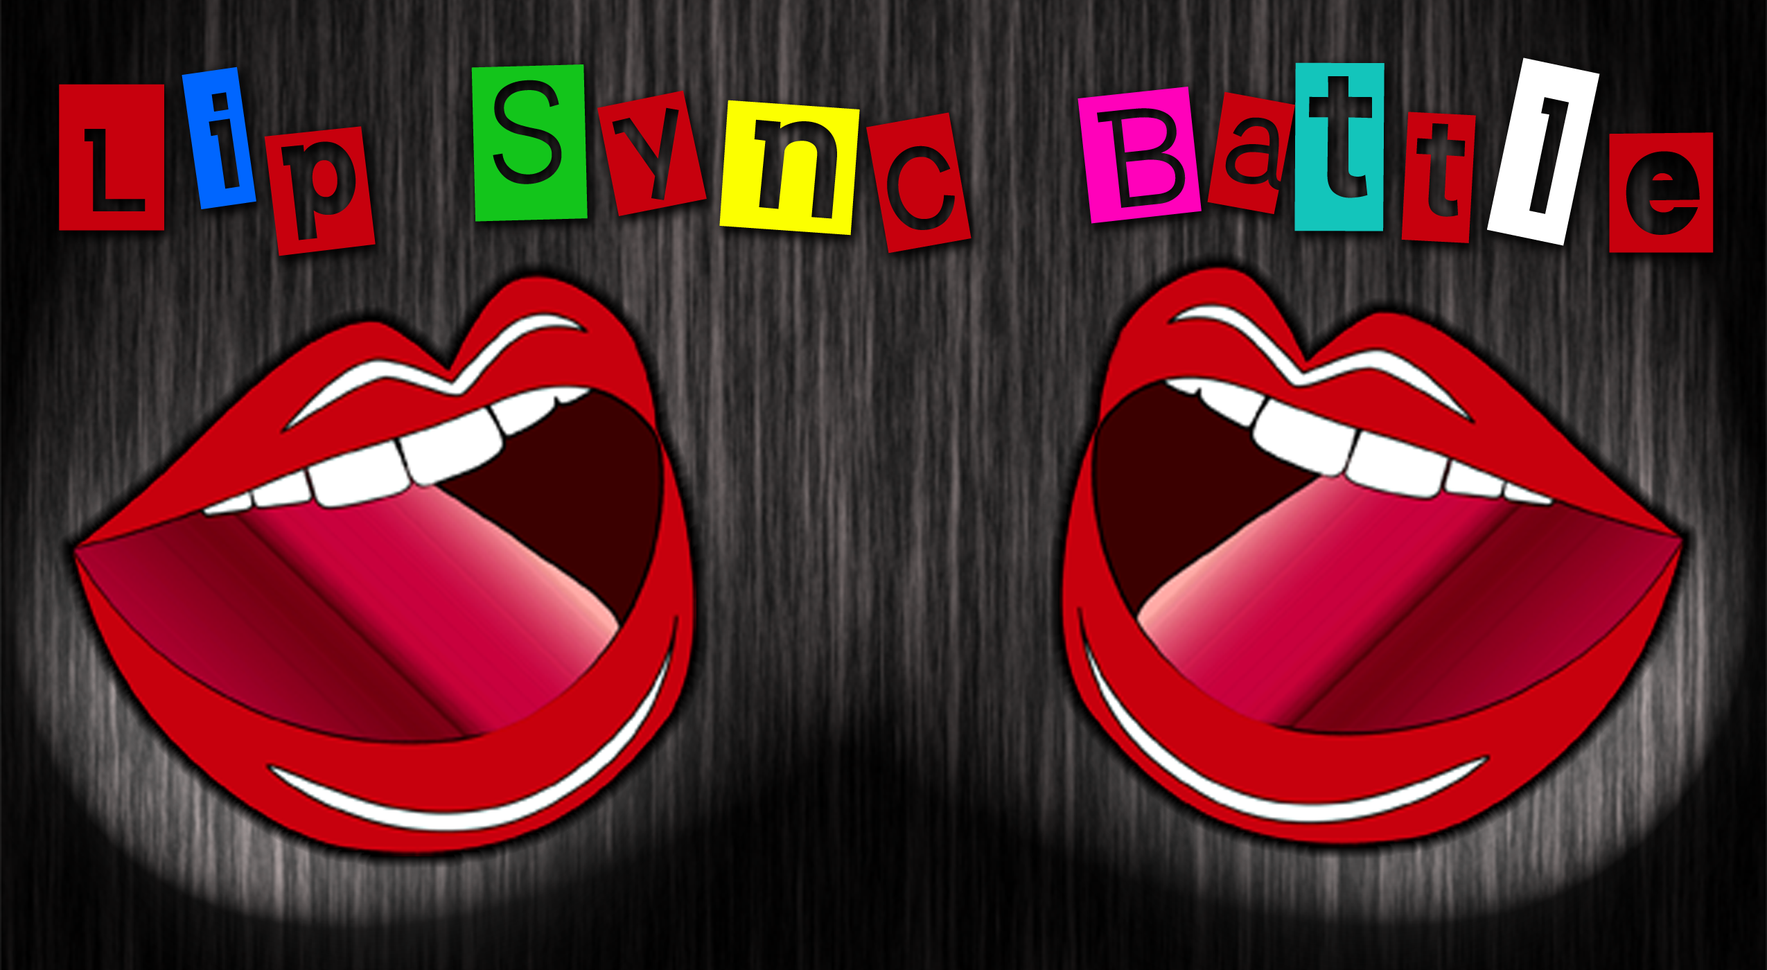 Vote for Team Coastal Retreat to win this year's Lip Sync Battle! image